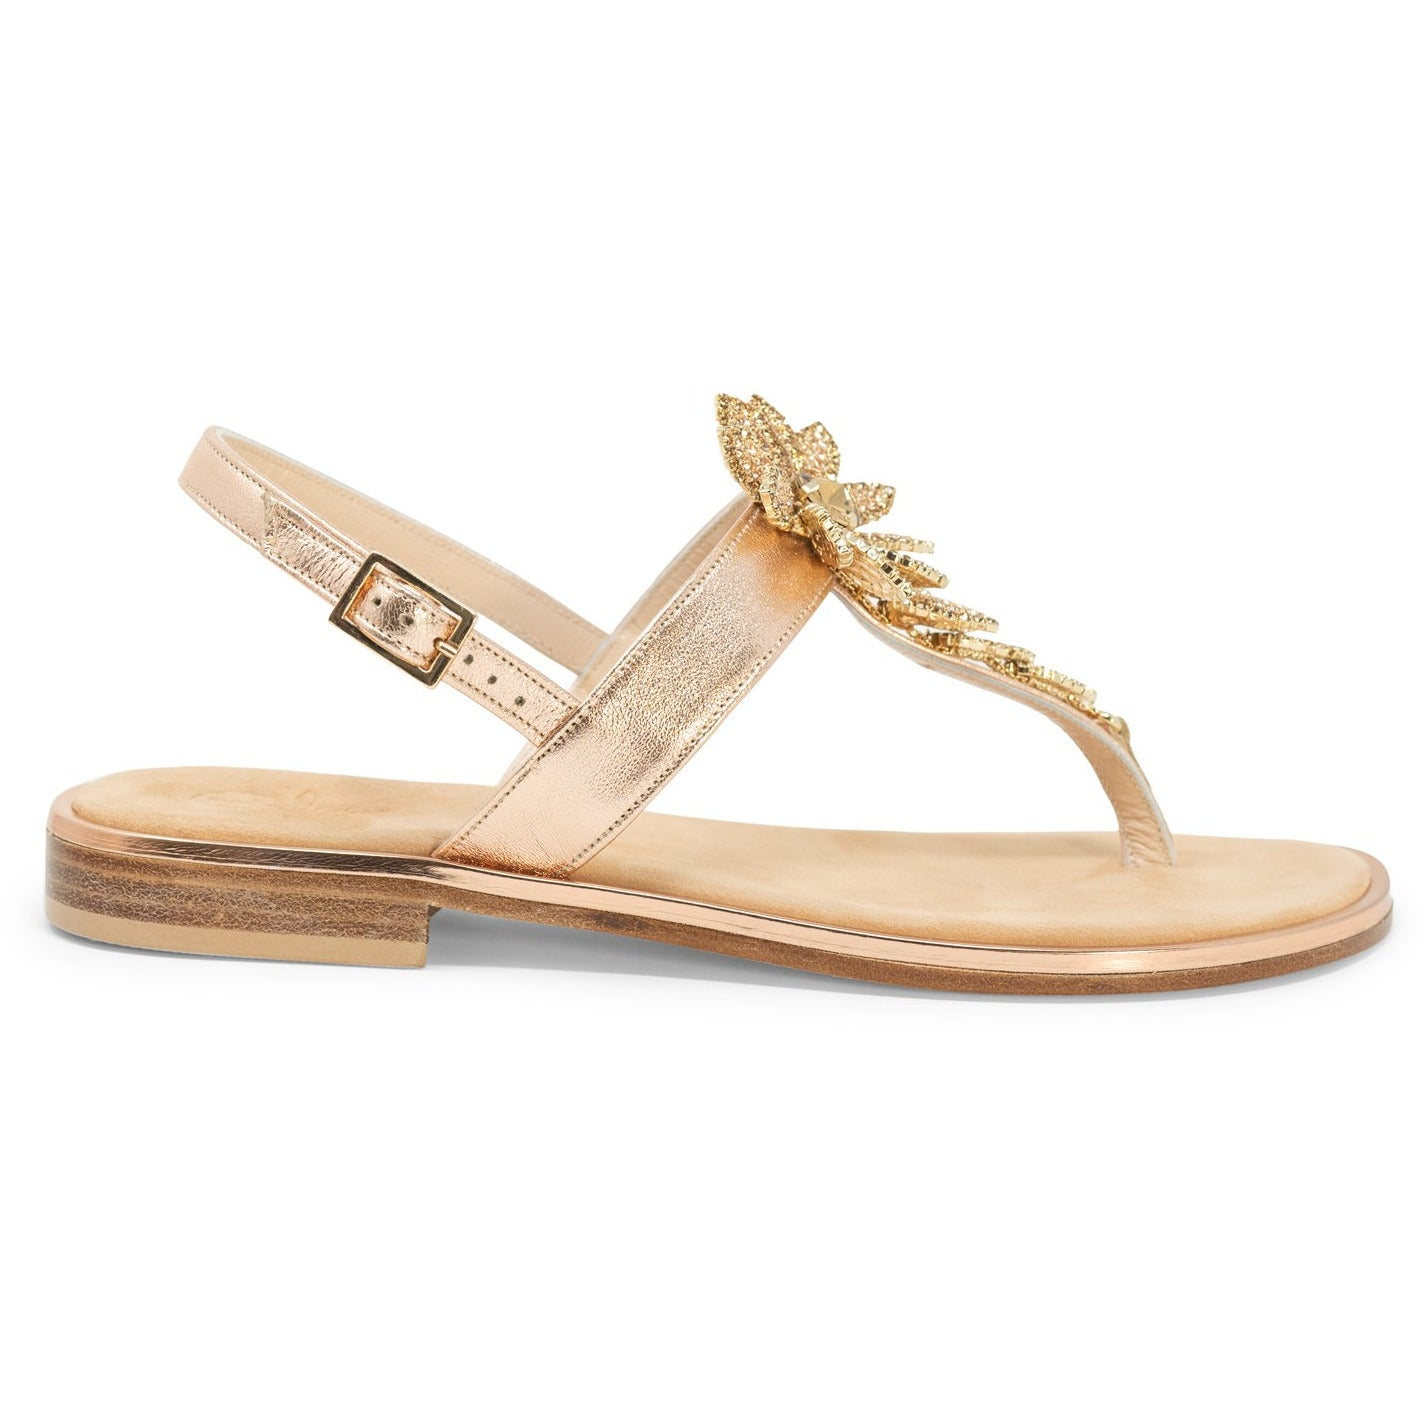 MPOWA2720 T20 Women Sandals - New Spring Summer 2020 Collection